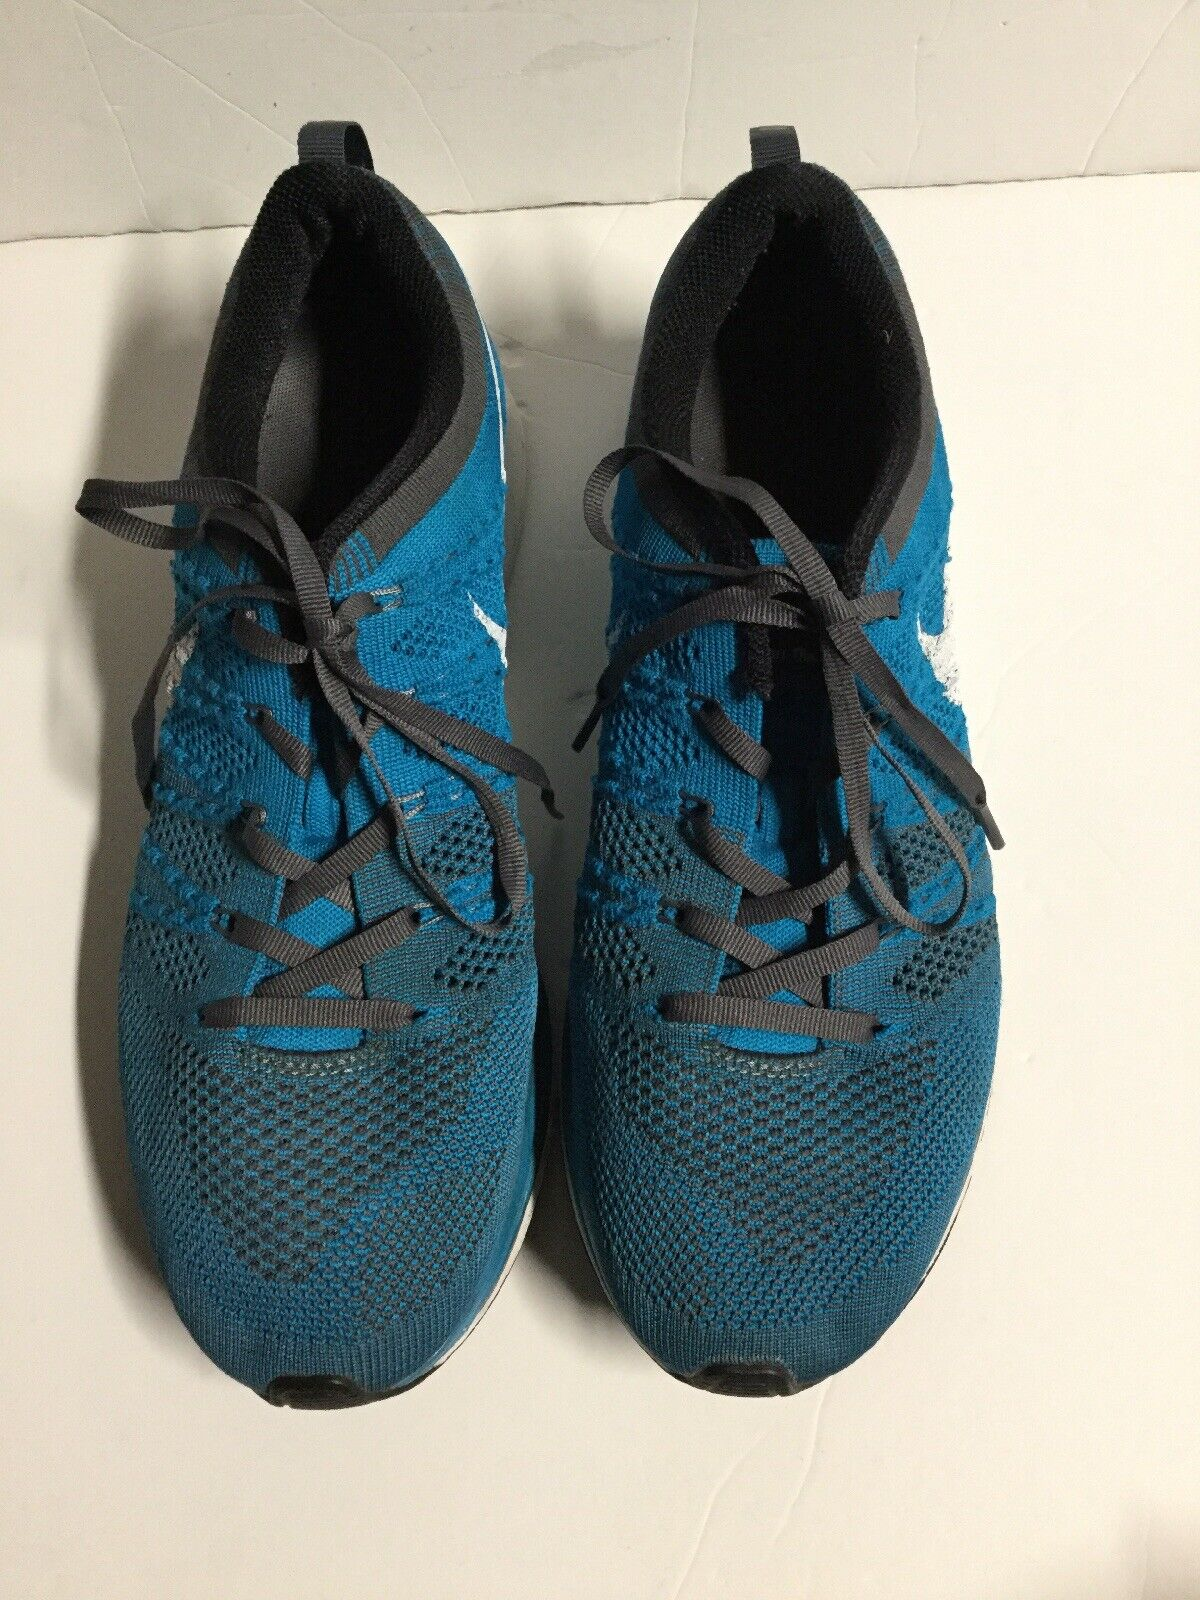 Nike Flyknit Trainer Size 9 Neo Turquoise Sneaker 532984-410.